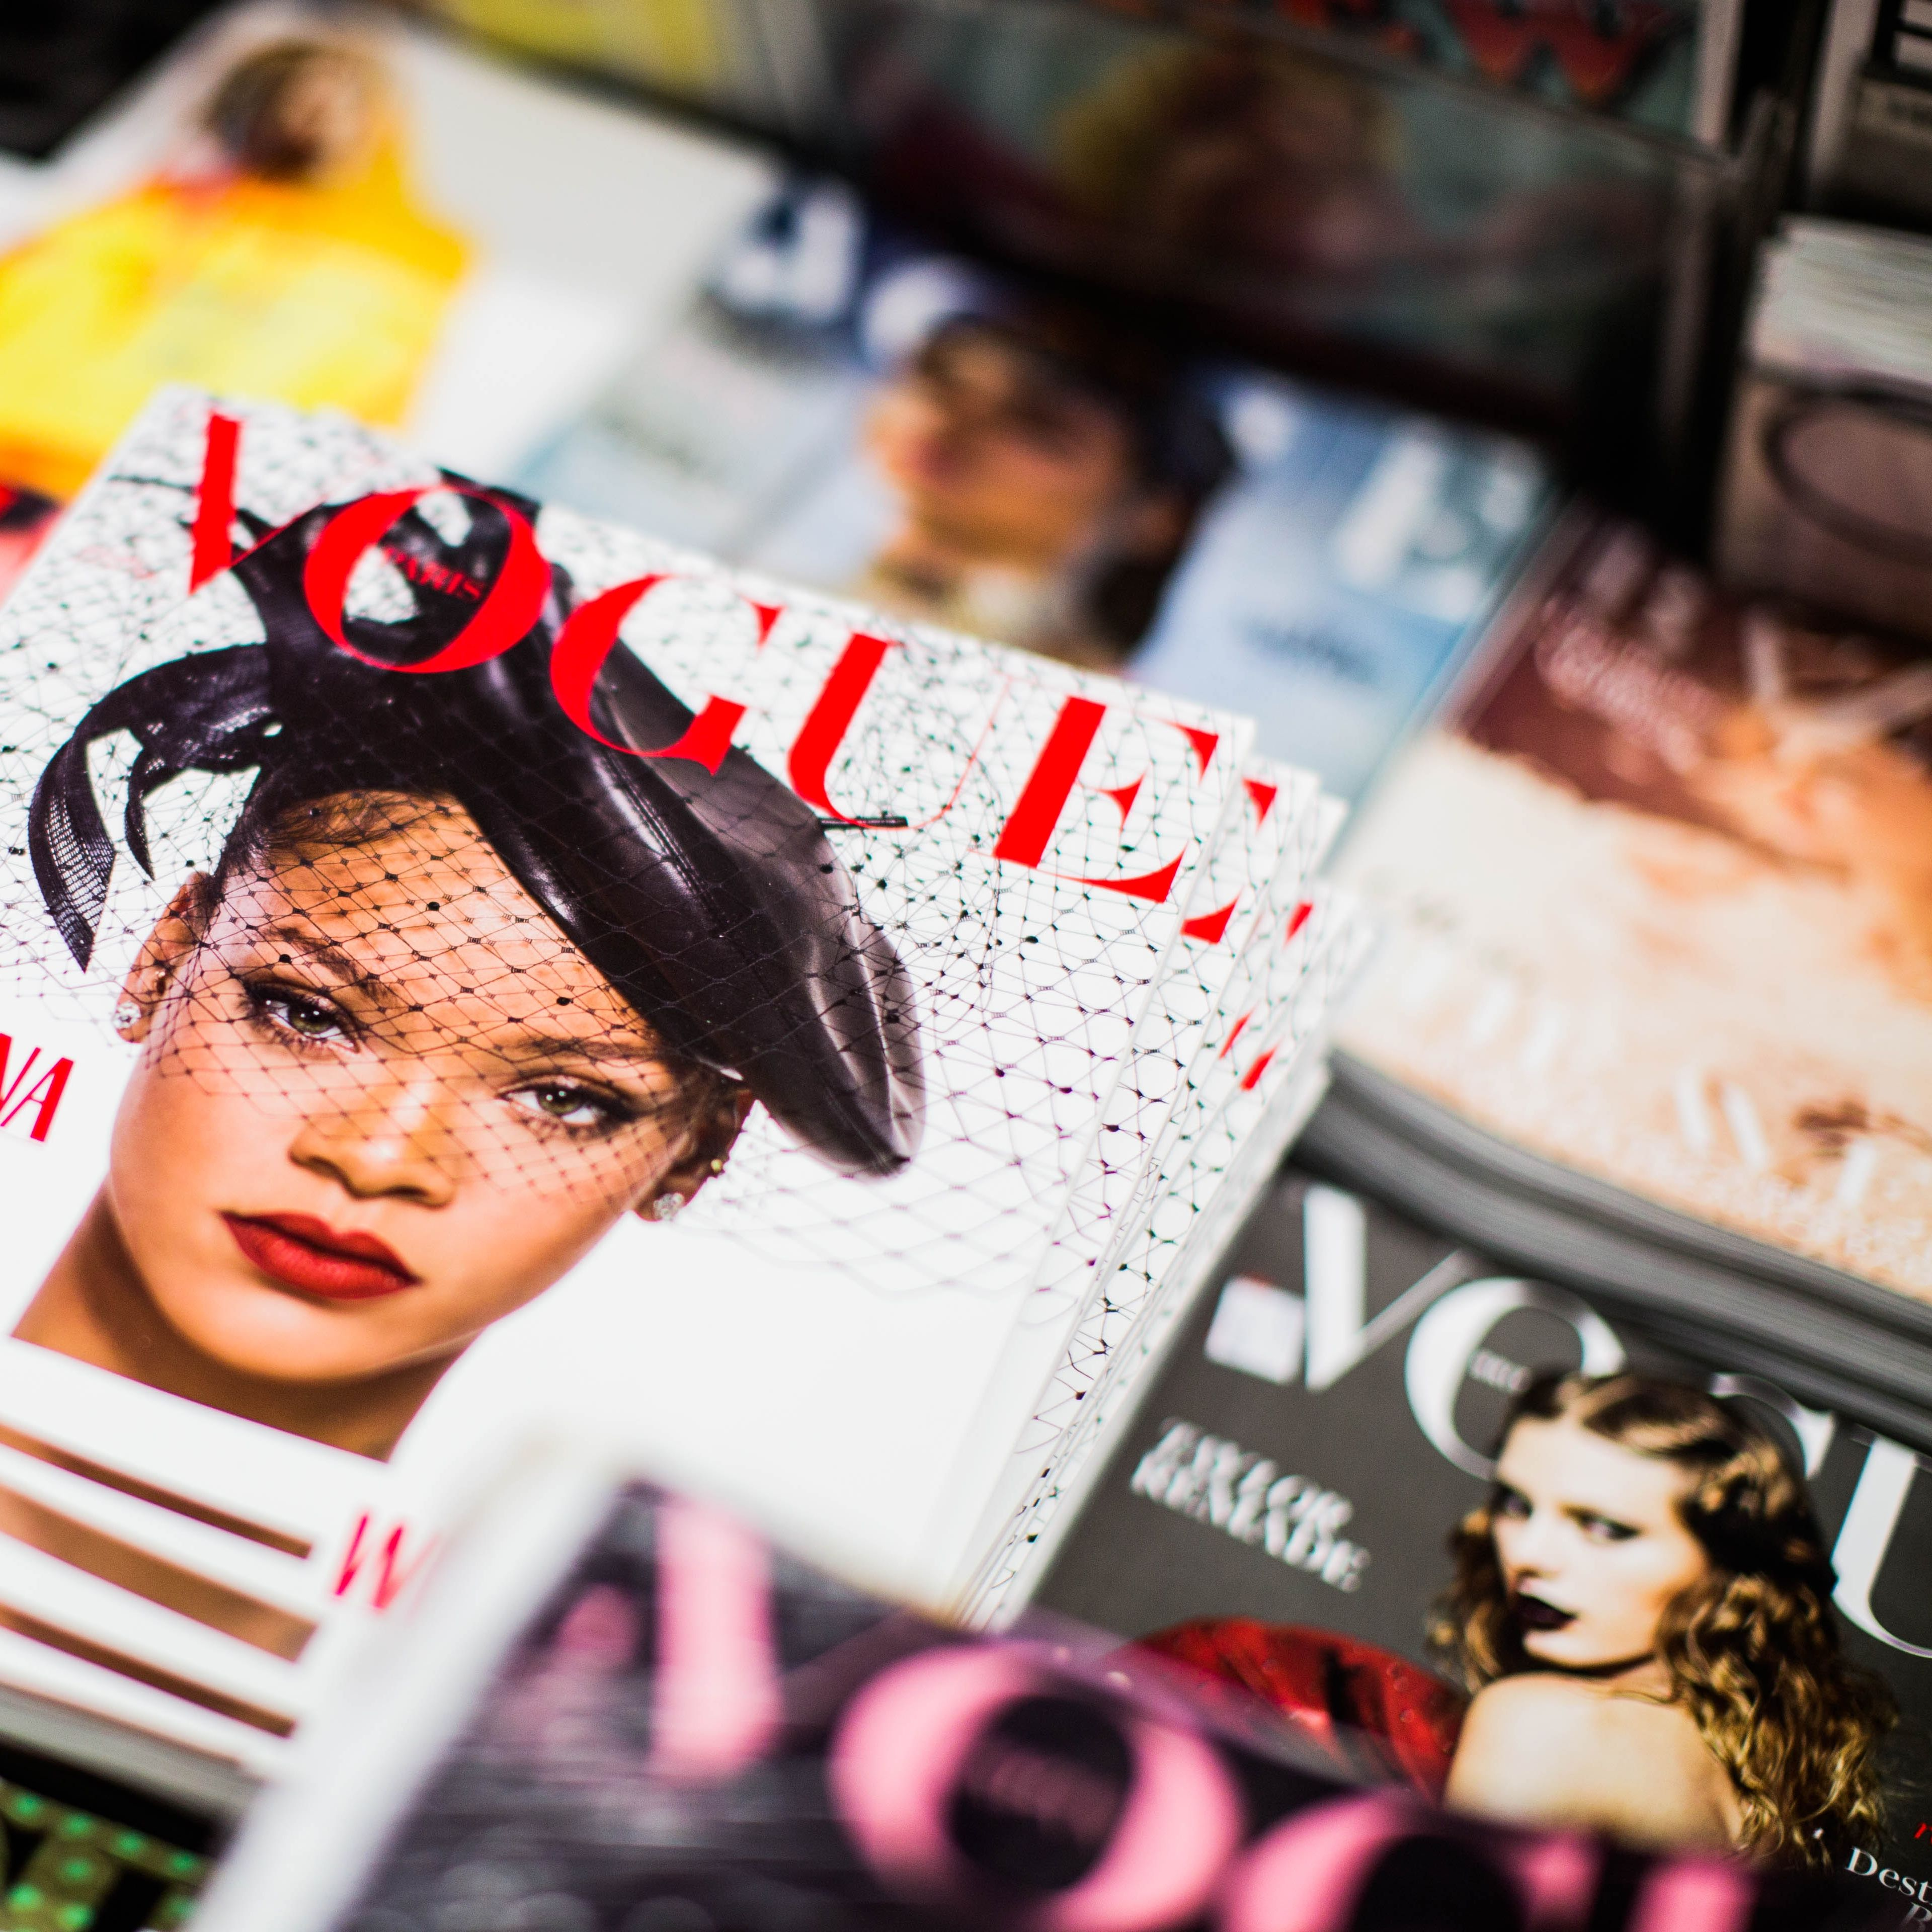 Close up of Vogue covers. The prominent cover features Rihanna.